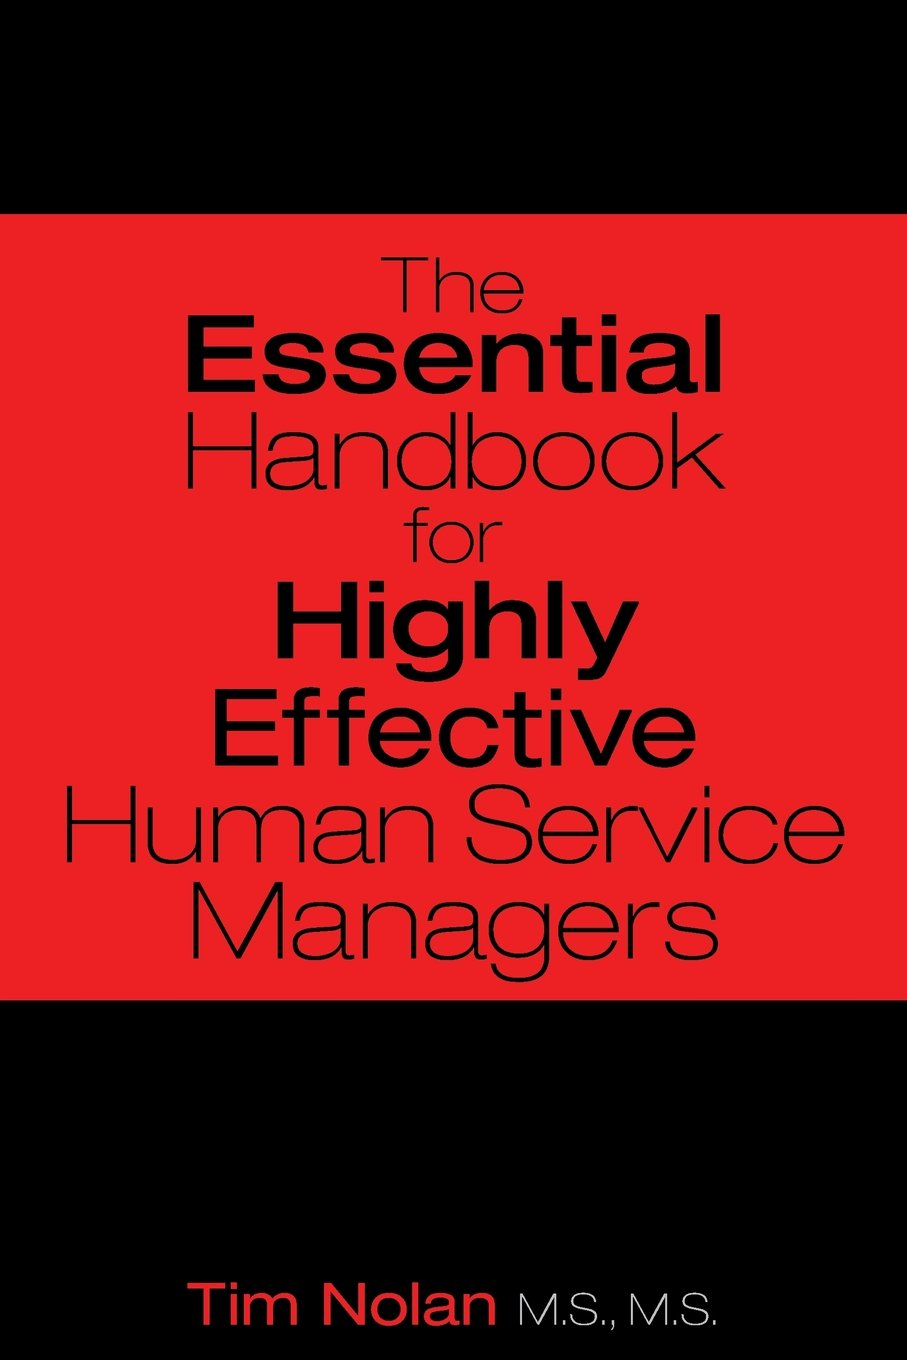 The essential handbook for highly effective human service managers the essential handbook for highly effective human service managers m s m s tim nolan 9781457532887 amazon books fandeluxe Choice Image